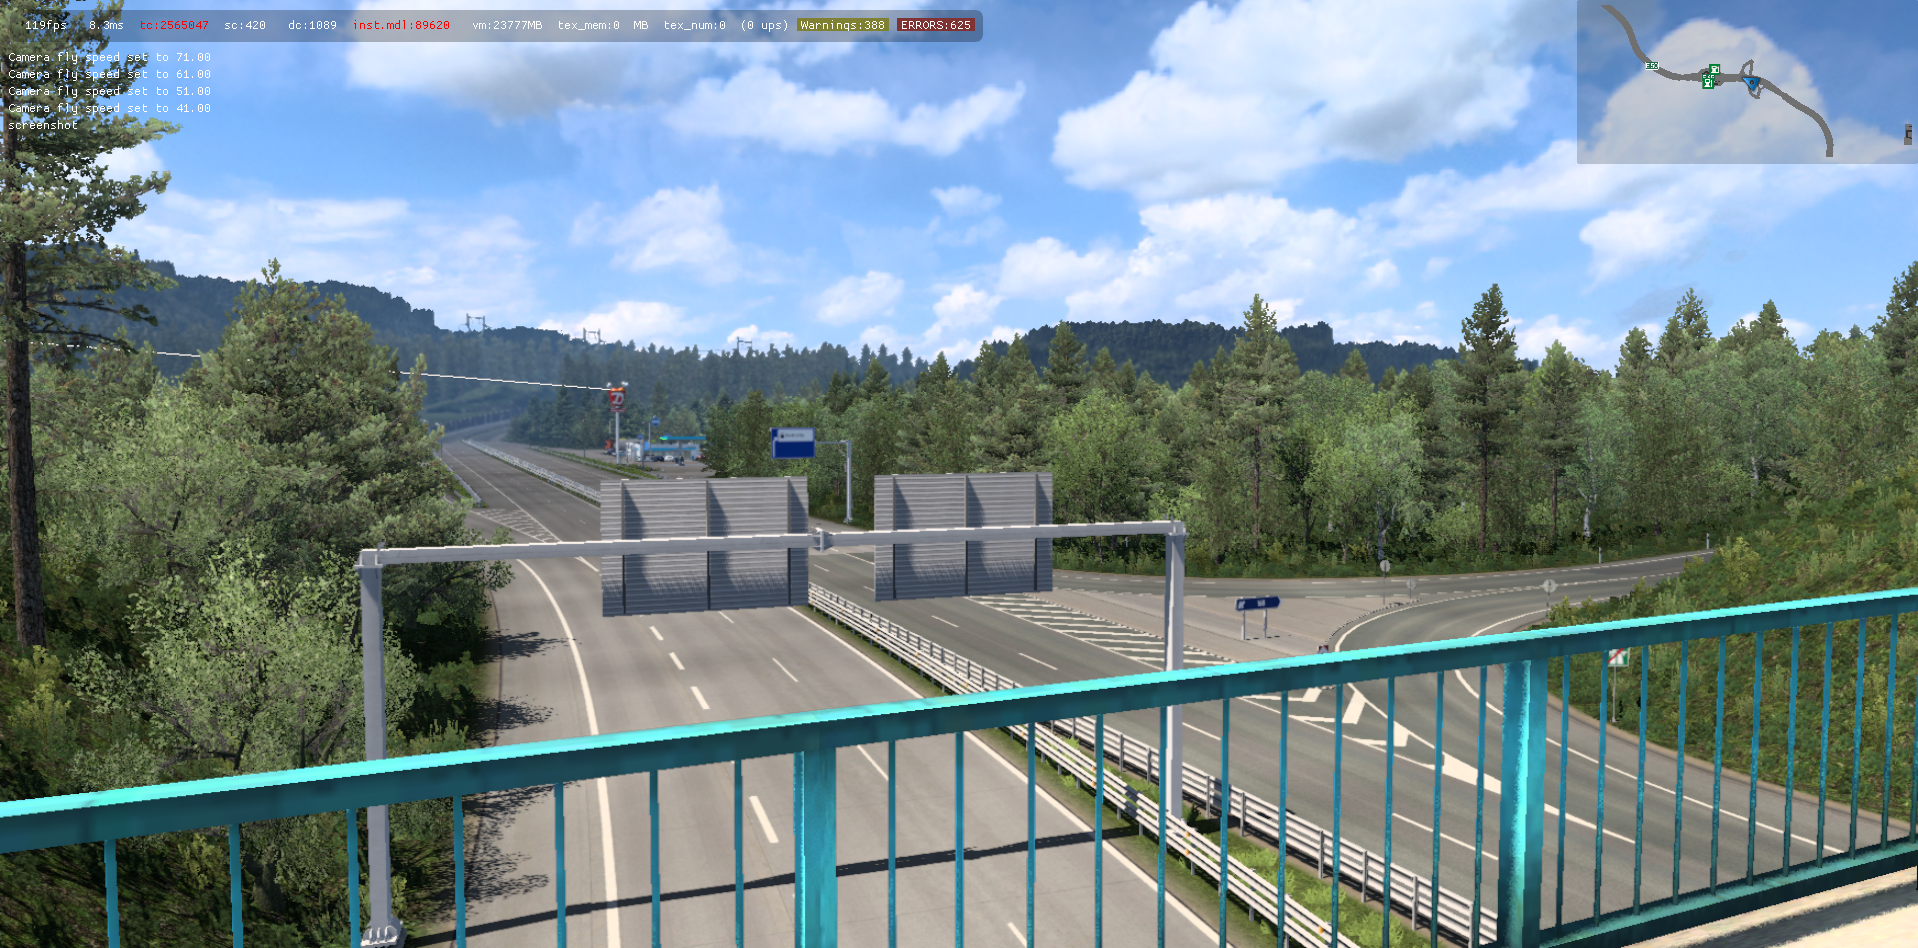 ets2_20210729_234002_00.png